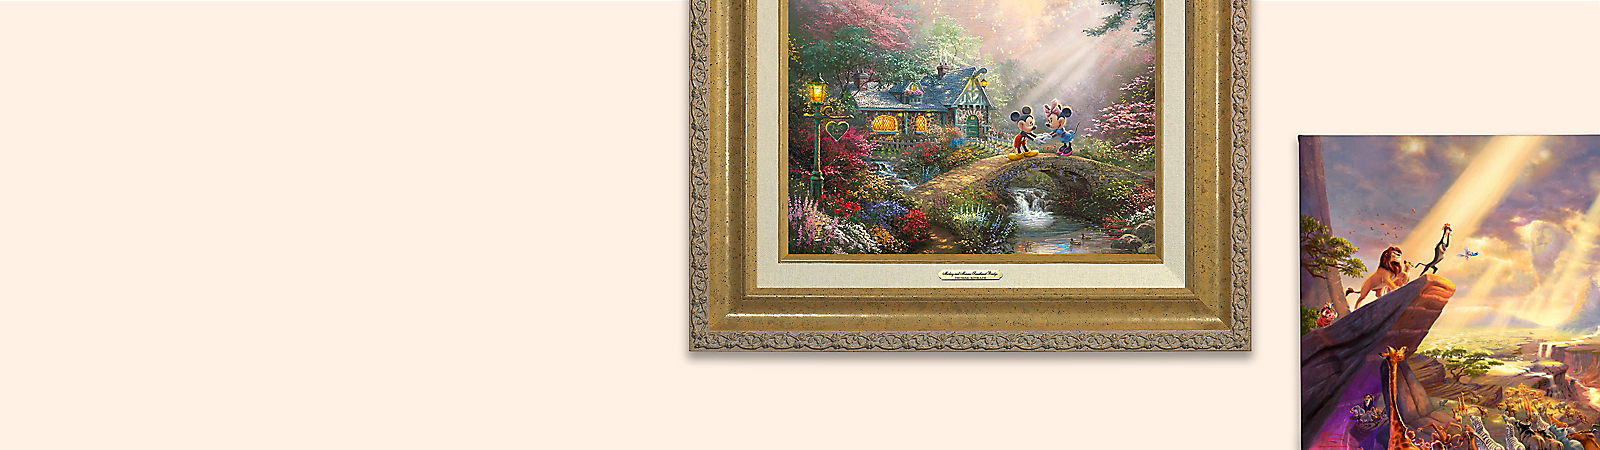 Background image of Thomas Kinkade